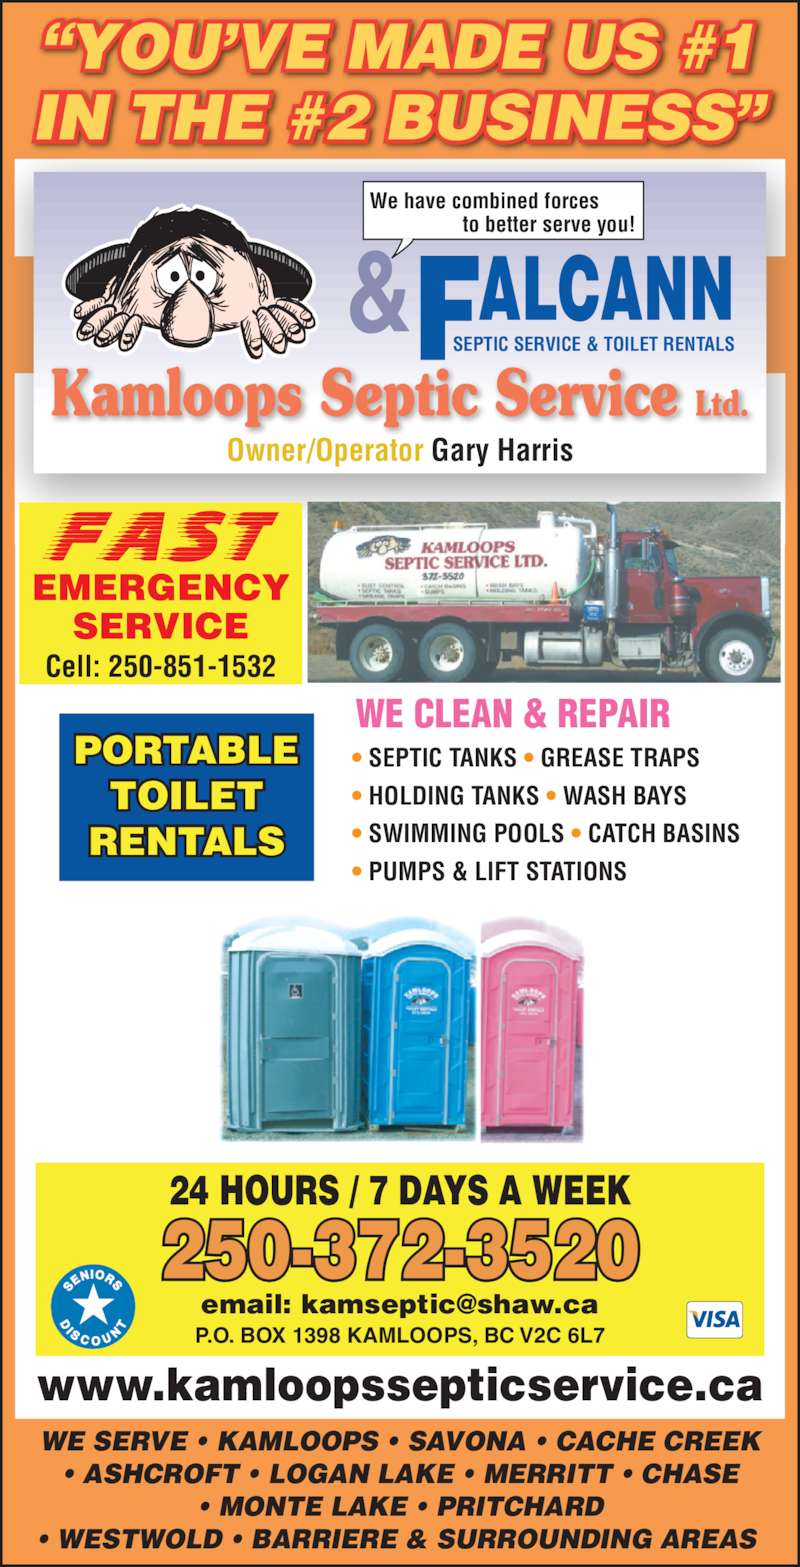 Kamloops Septic Service (250-372-3520) - Display Ad - Cell: 250-851-1532 WE SERVE ? KAMLOOPS ? SAVONA ? CACHE CREEK ? ASHCROFT ? LOGAN LAKE ? MERRITT ? CHASE ? MONTE LAKE ? PRITCHARD ? WESTWOLD ? BARRIERE & SURROUNDING AREAS  P.O. BOX 1398 KAMLOOPS, BC V2C 6L7 24 HOURS / 7 DAYS A WEEK 250-372-3520 www.kamloopssepticservice.ca ? SEPTIC TANKS ? GREASE TRAPS ? HOLDING TANKS ? WASH BAYS ? SWIMMING POOLS ? CATCH BASINS ? PUMPS & LIFT STATIONS WE CLEAN & REPAIR PORTABLE TOILET RENTALS ?YOU?VE MADE US #1 IN THE #2 BUSINESS? Kamloops Septic Service Ltd. Owner/Operator Gary Harris SEPTIC SERVICE & TOILET RENTALS ALCANN& We have combined forces                  to better serve you! EMERGENCY SERVICE